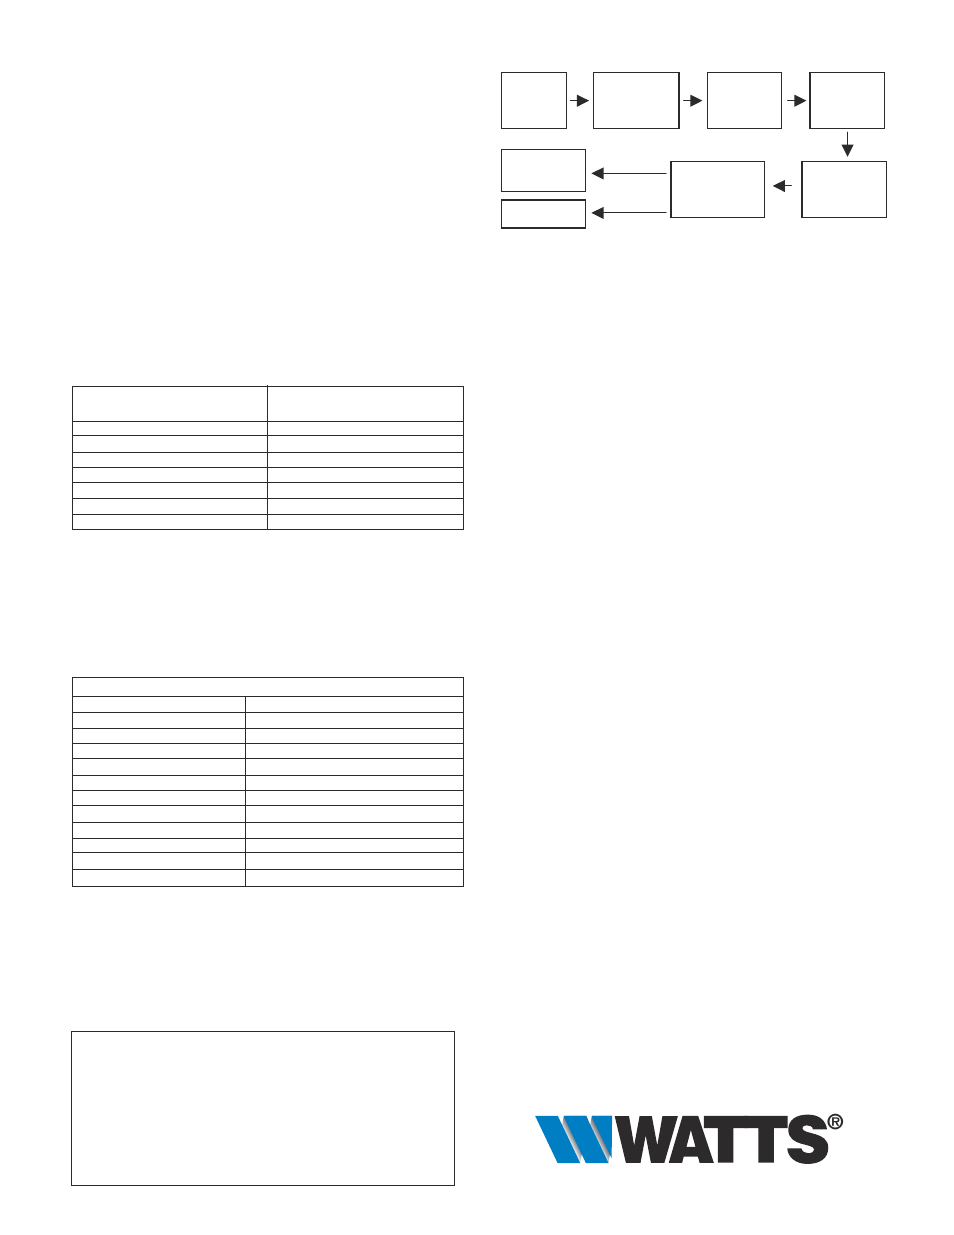 Watts R12-1200-1 User Manual | Page 2 / 2 | Also for: R12